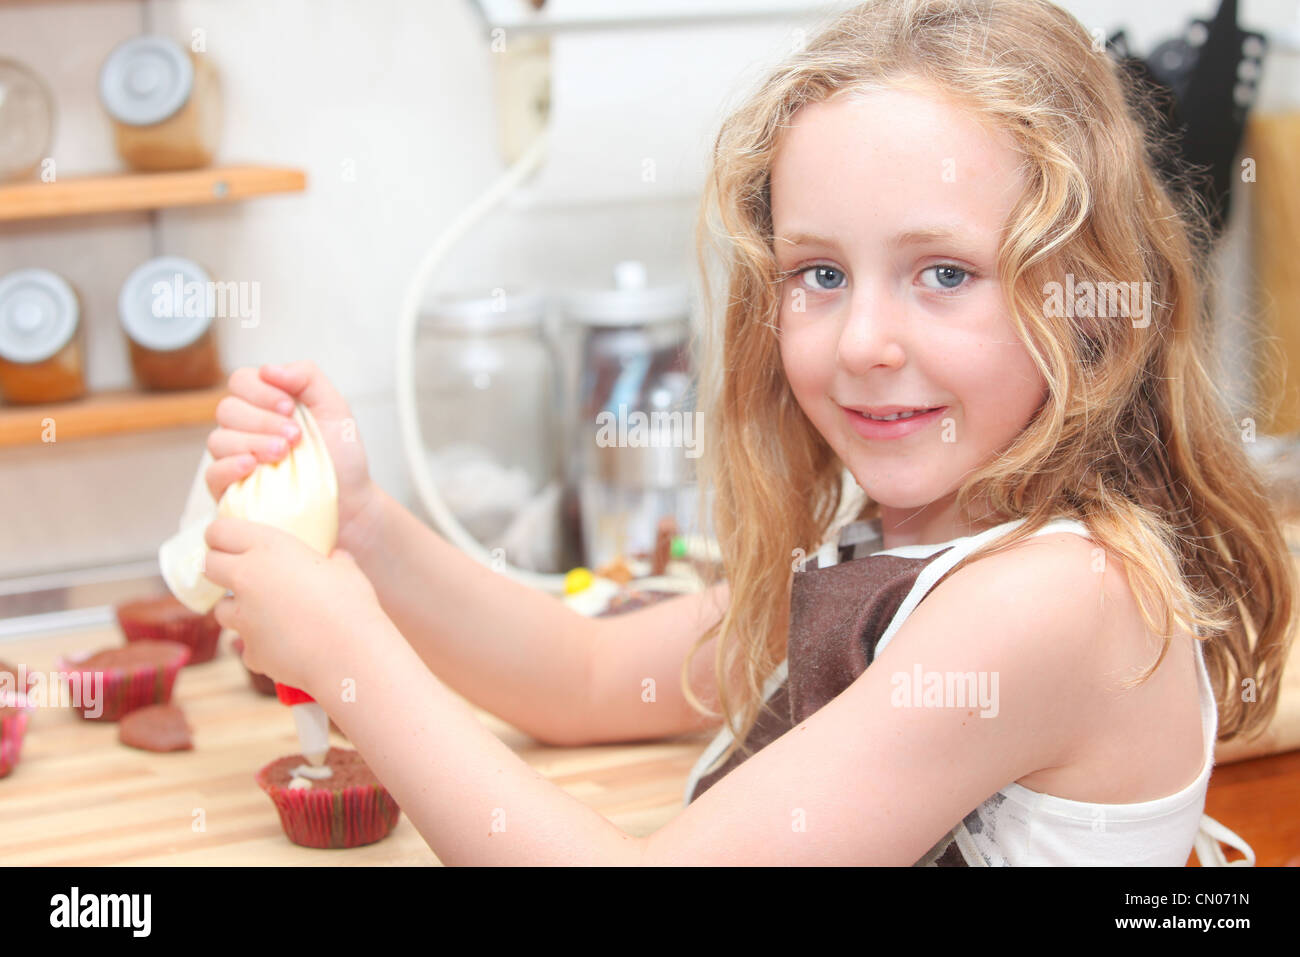 child cooking and helping decorate cupcakes - Stock Image